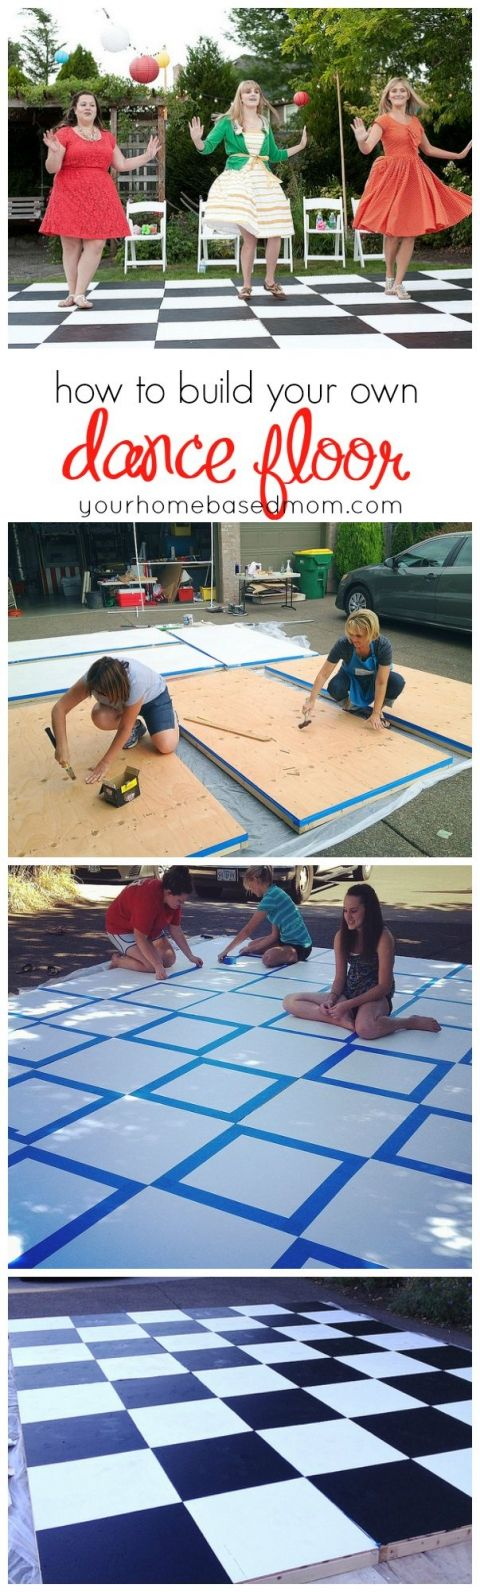 Building your own dance floor is easy and so much less expensive than renting one.  Use this step by step tutorial!